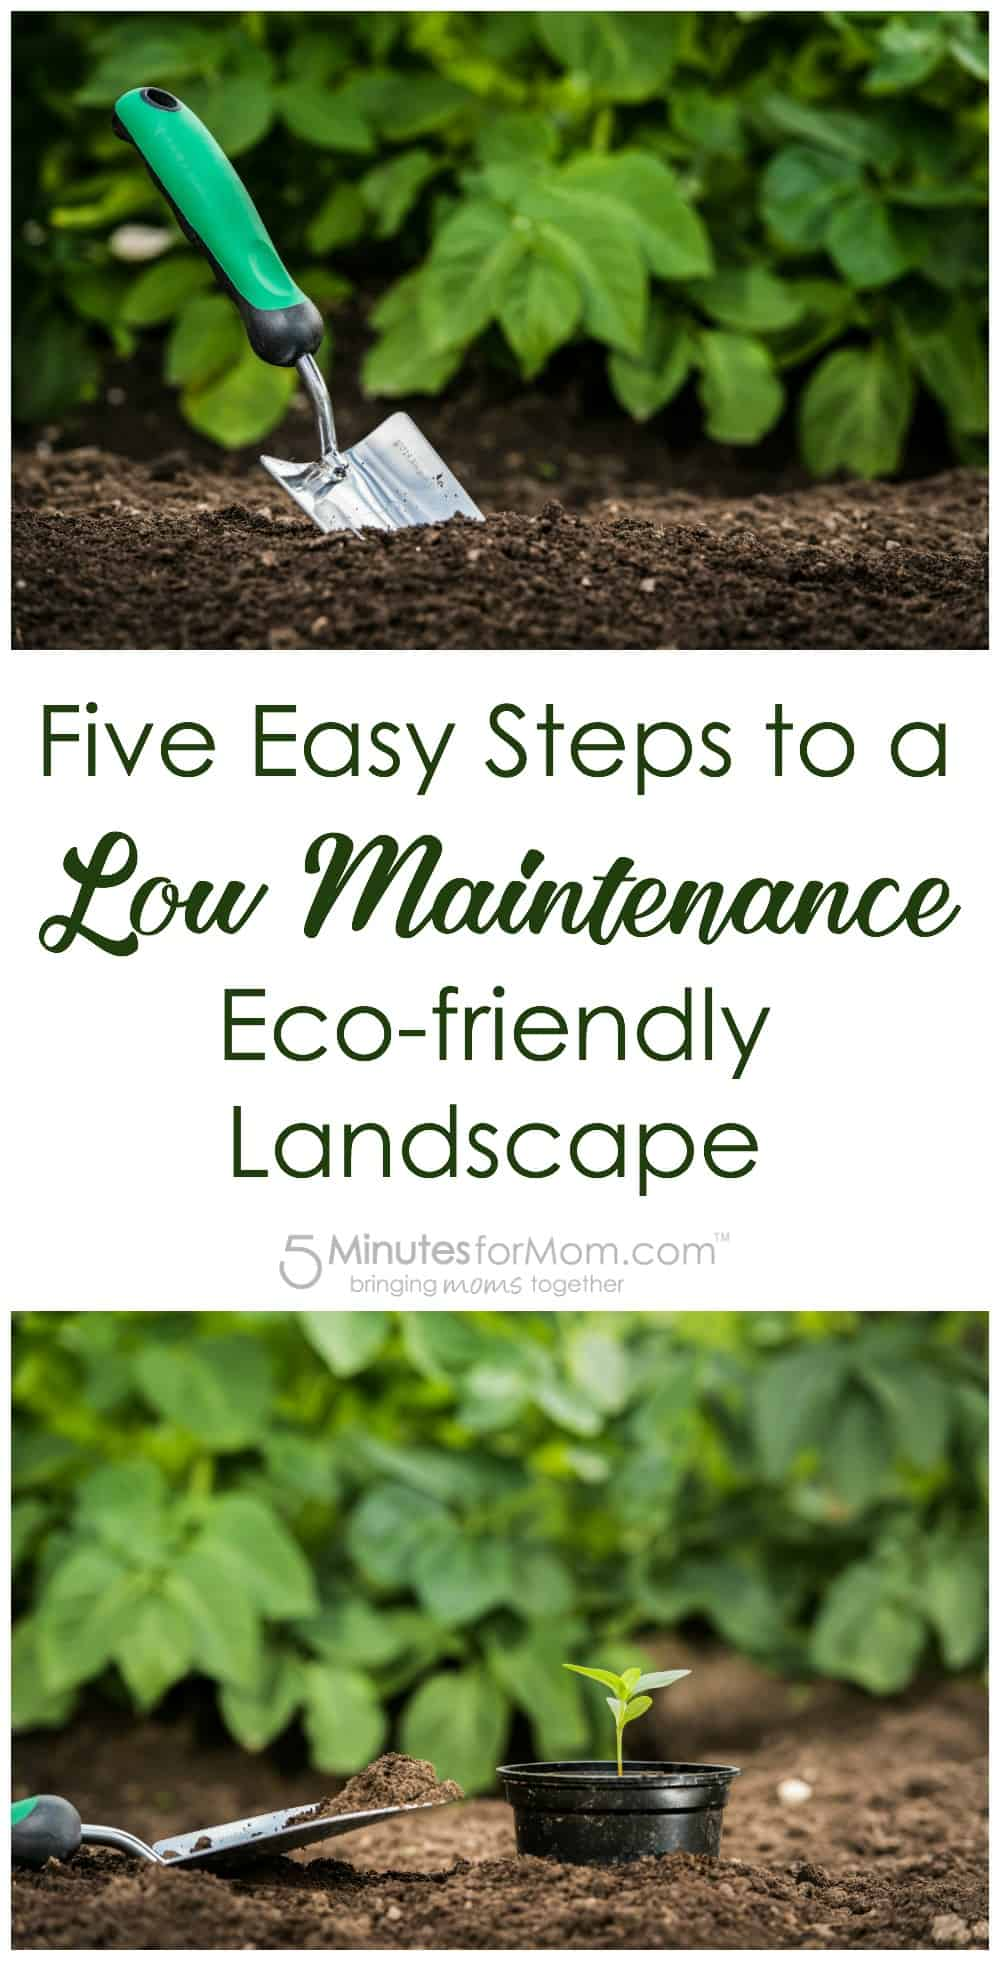 Five Easy Steps to a Low Maintenance Eco-friendly Landscape - Gardening Tips